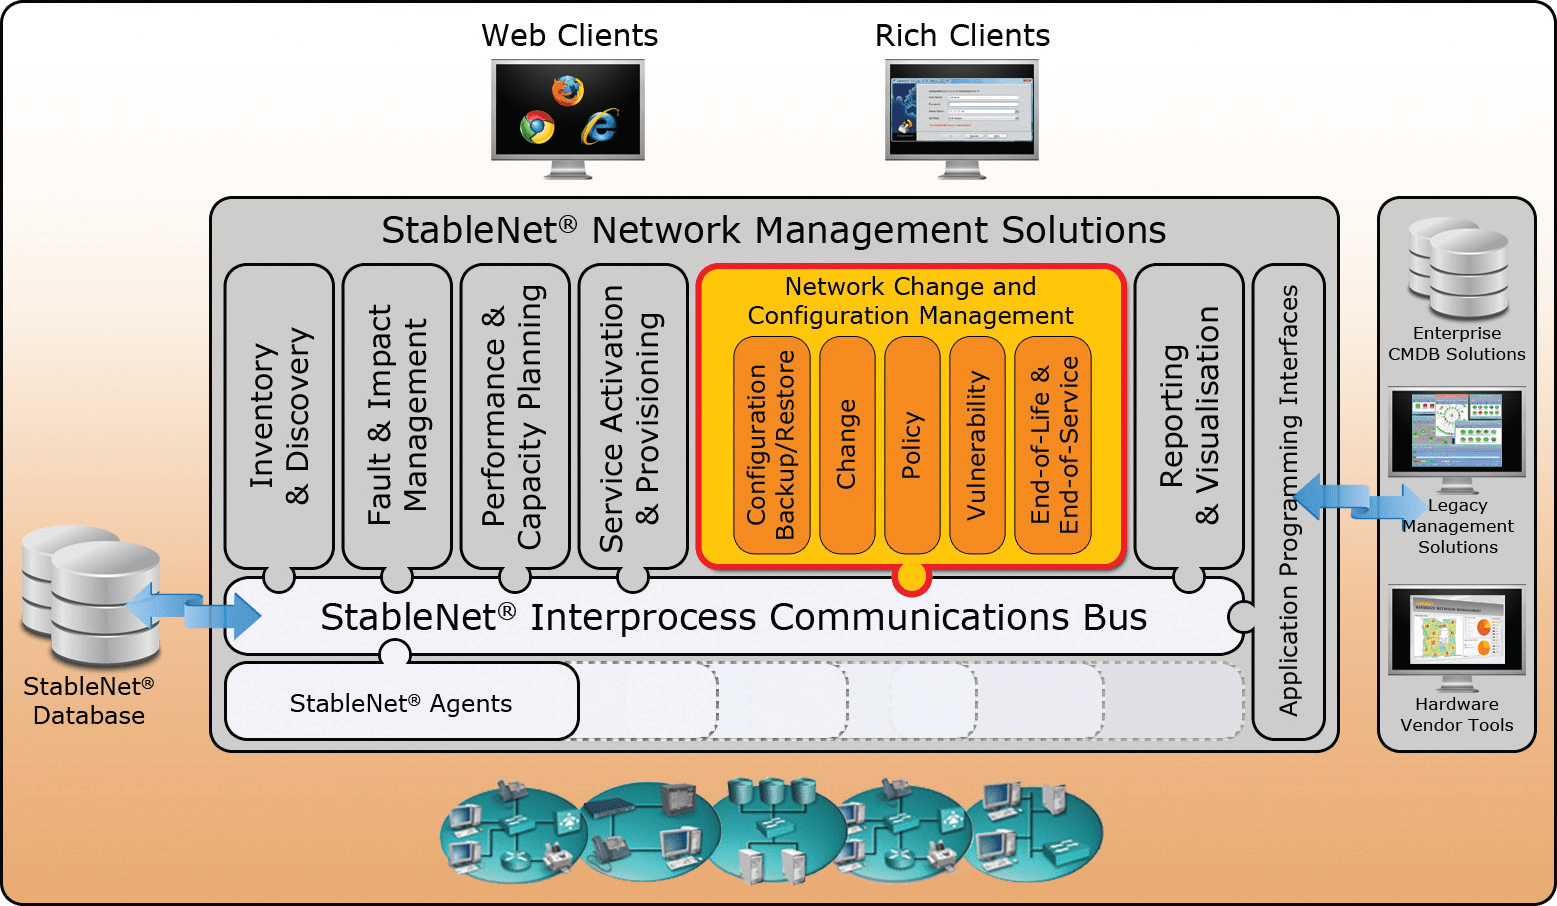 StableNet Network Management Solutions